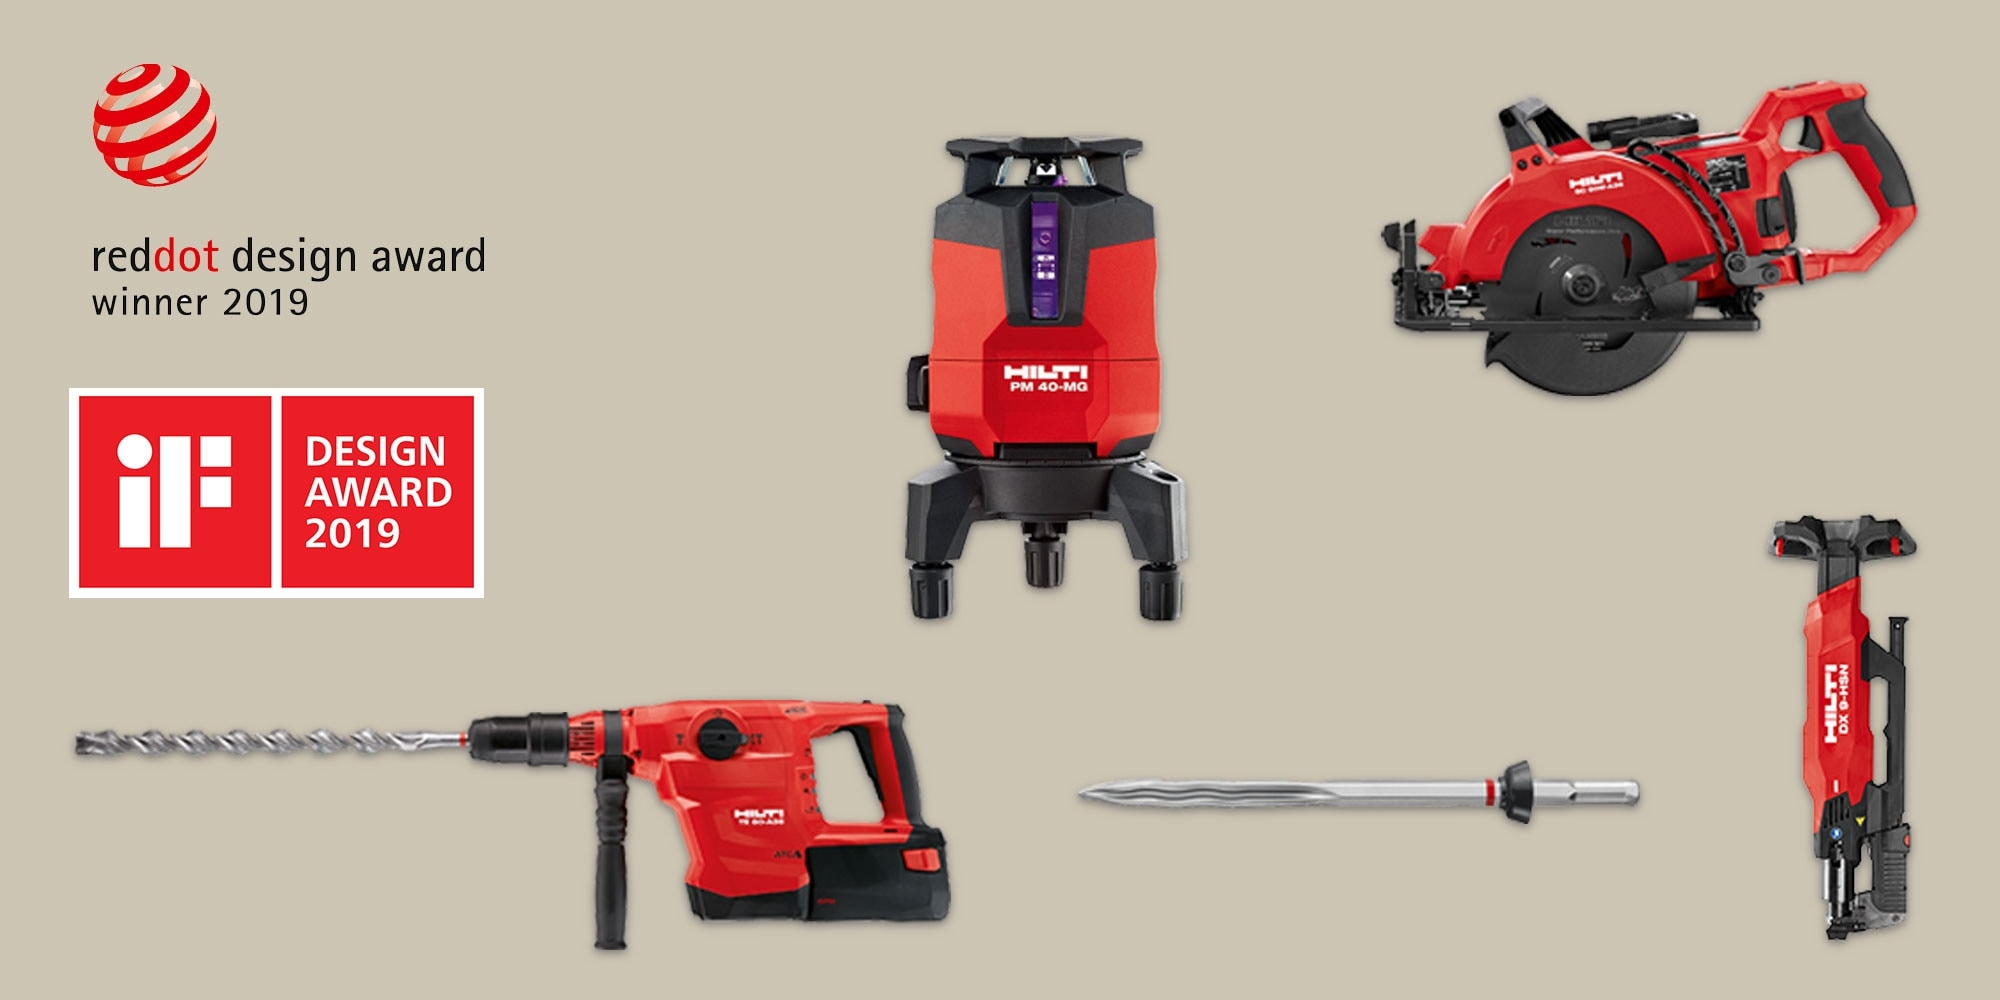 Inovações Hilti distinguidas nos Red Dot Design